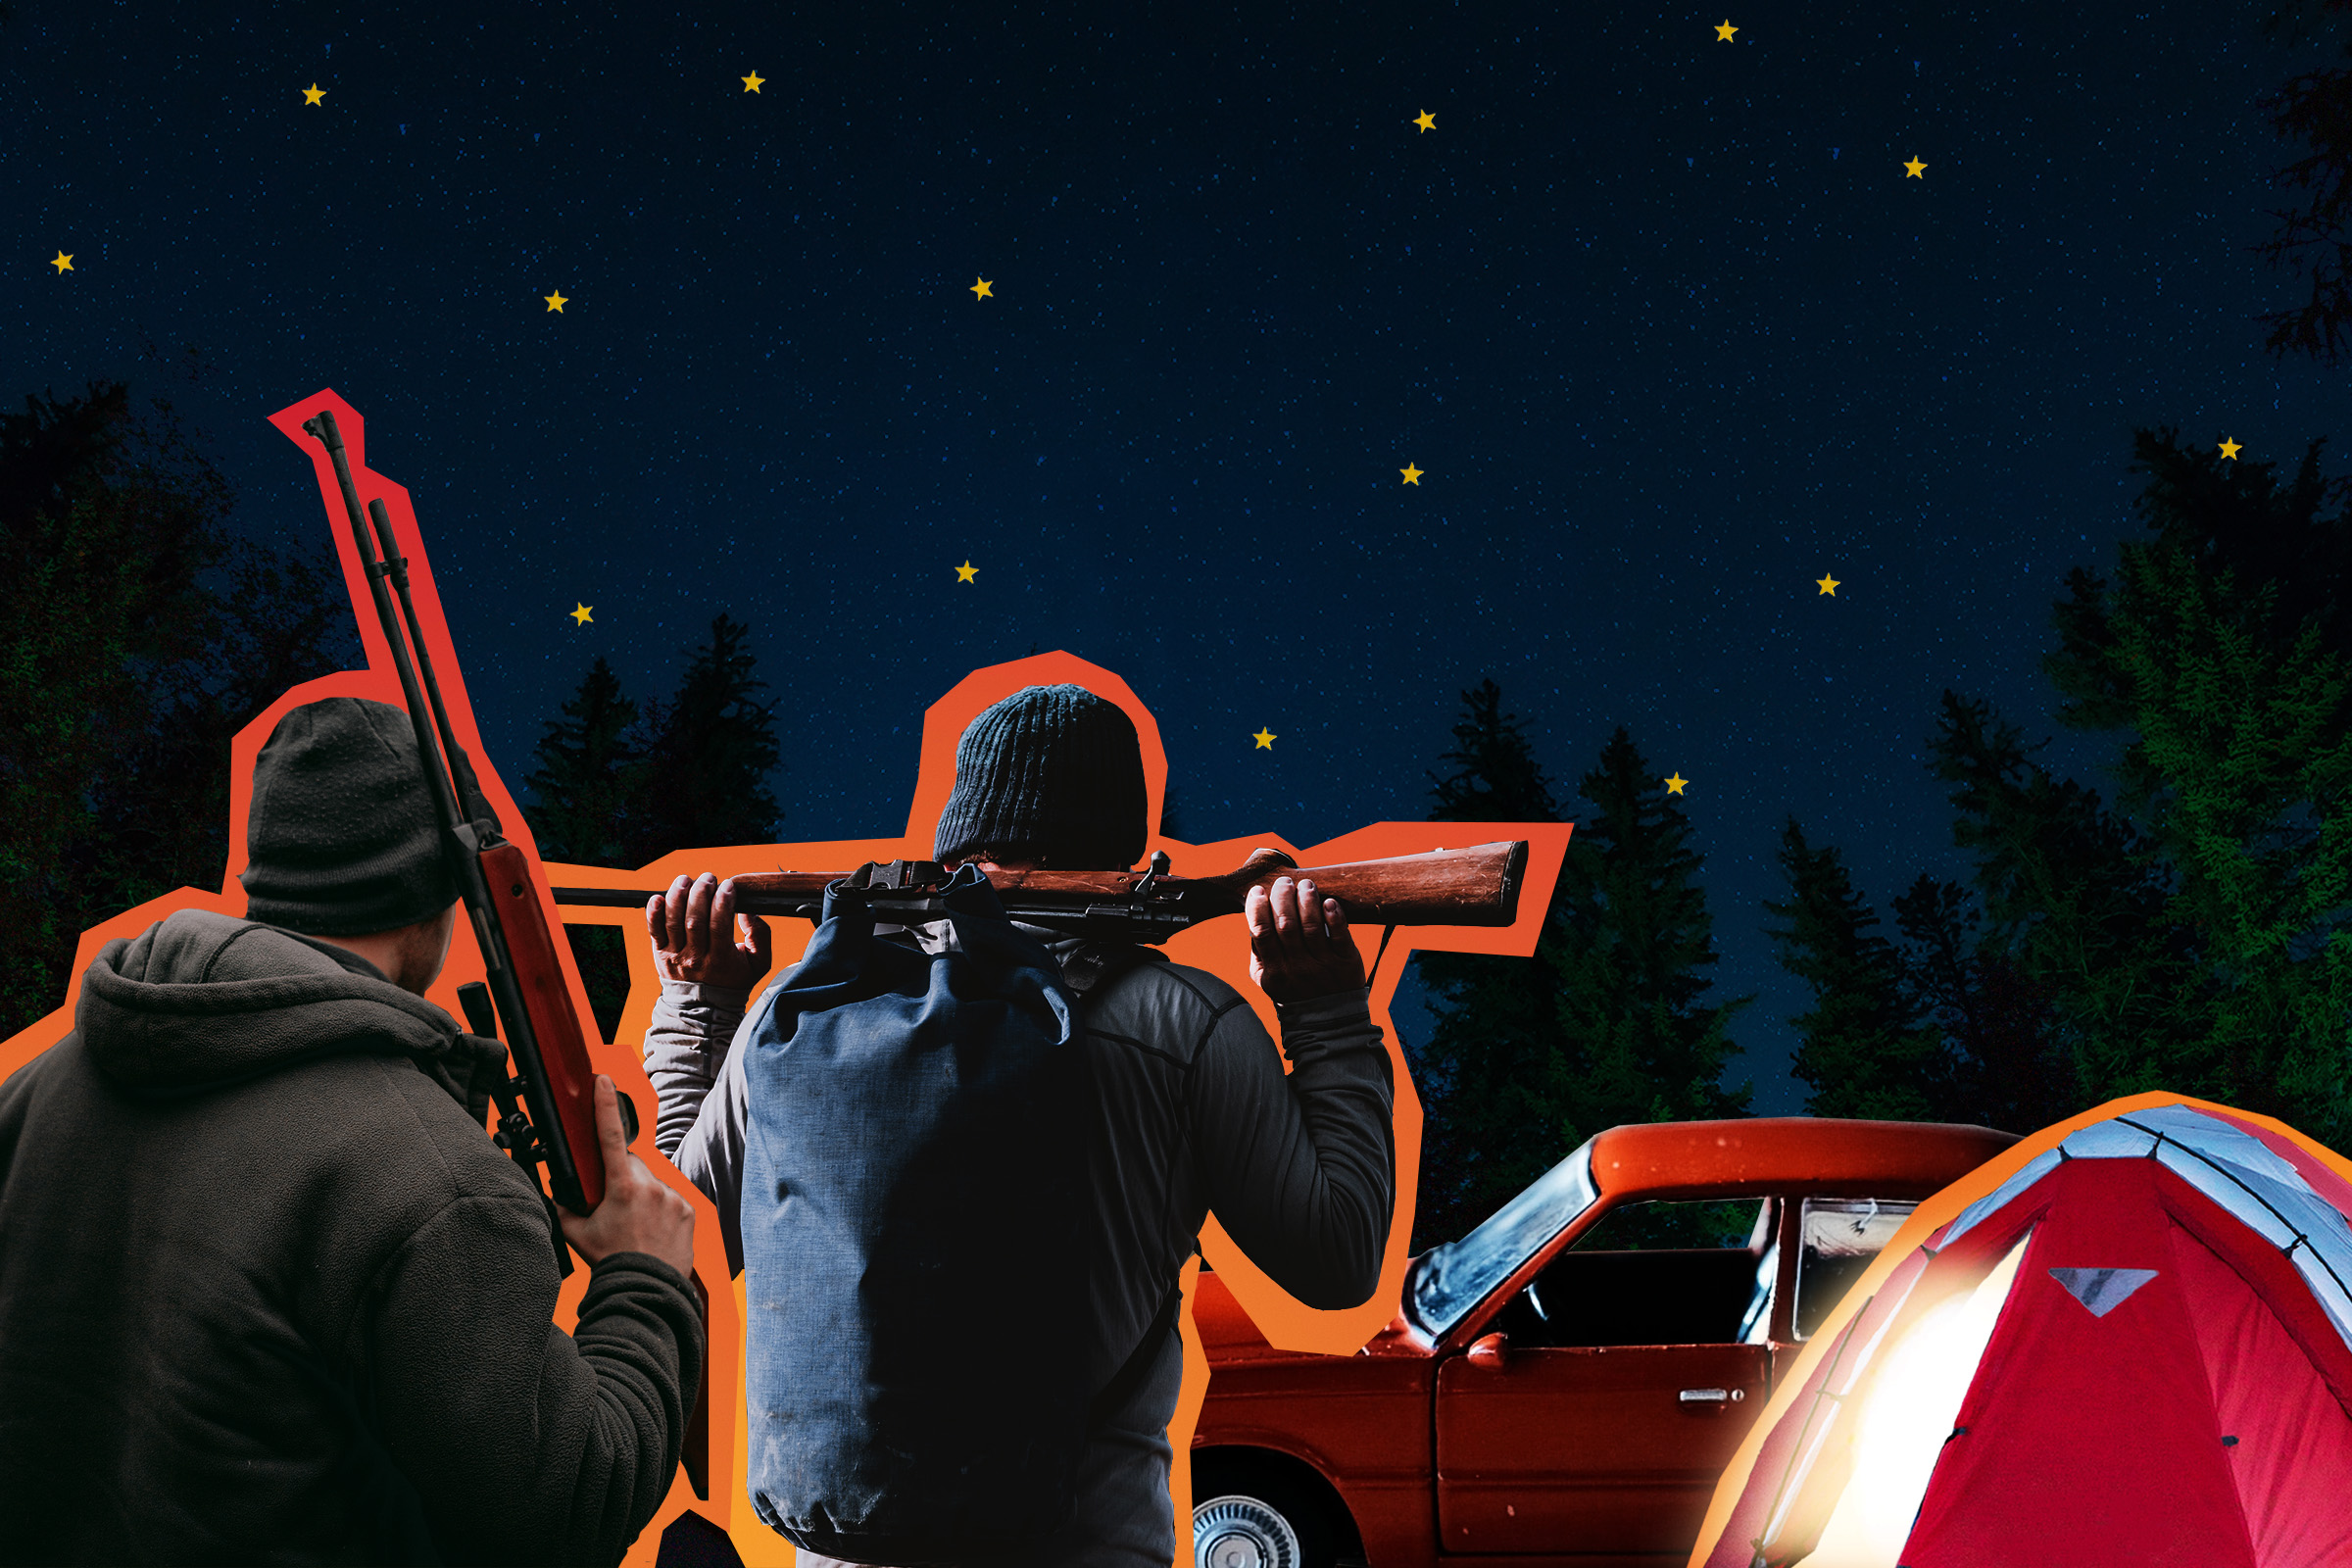 a collage of two white boys standing outside at night and holding rifles